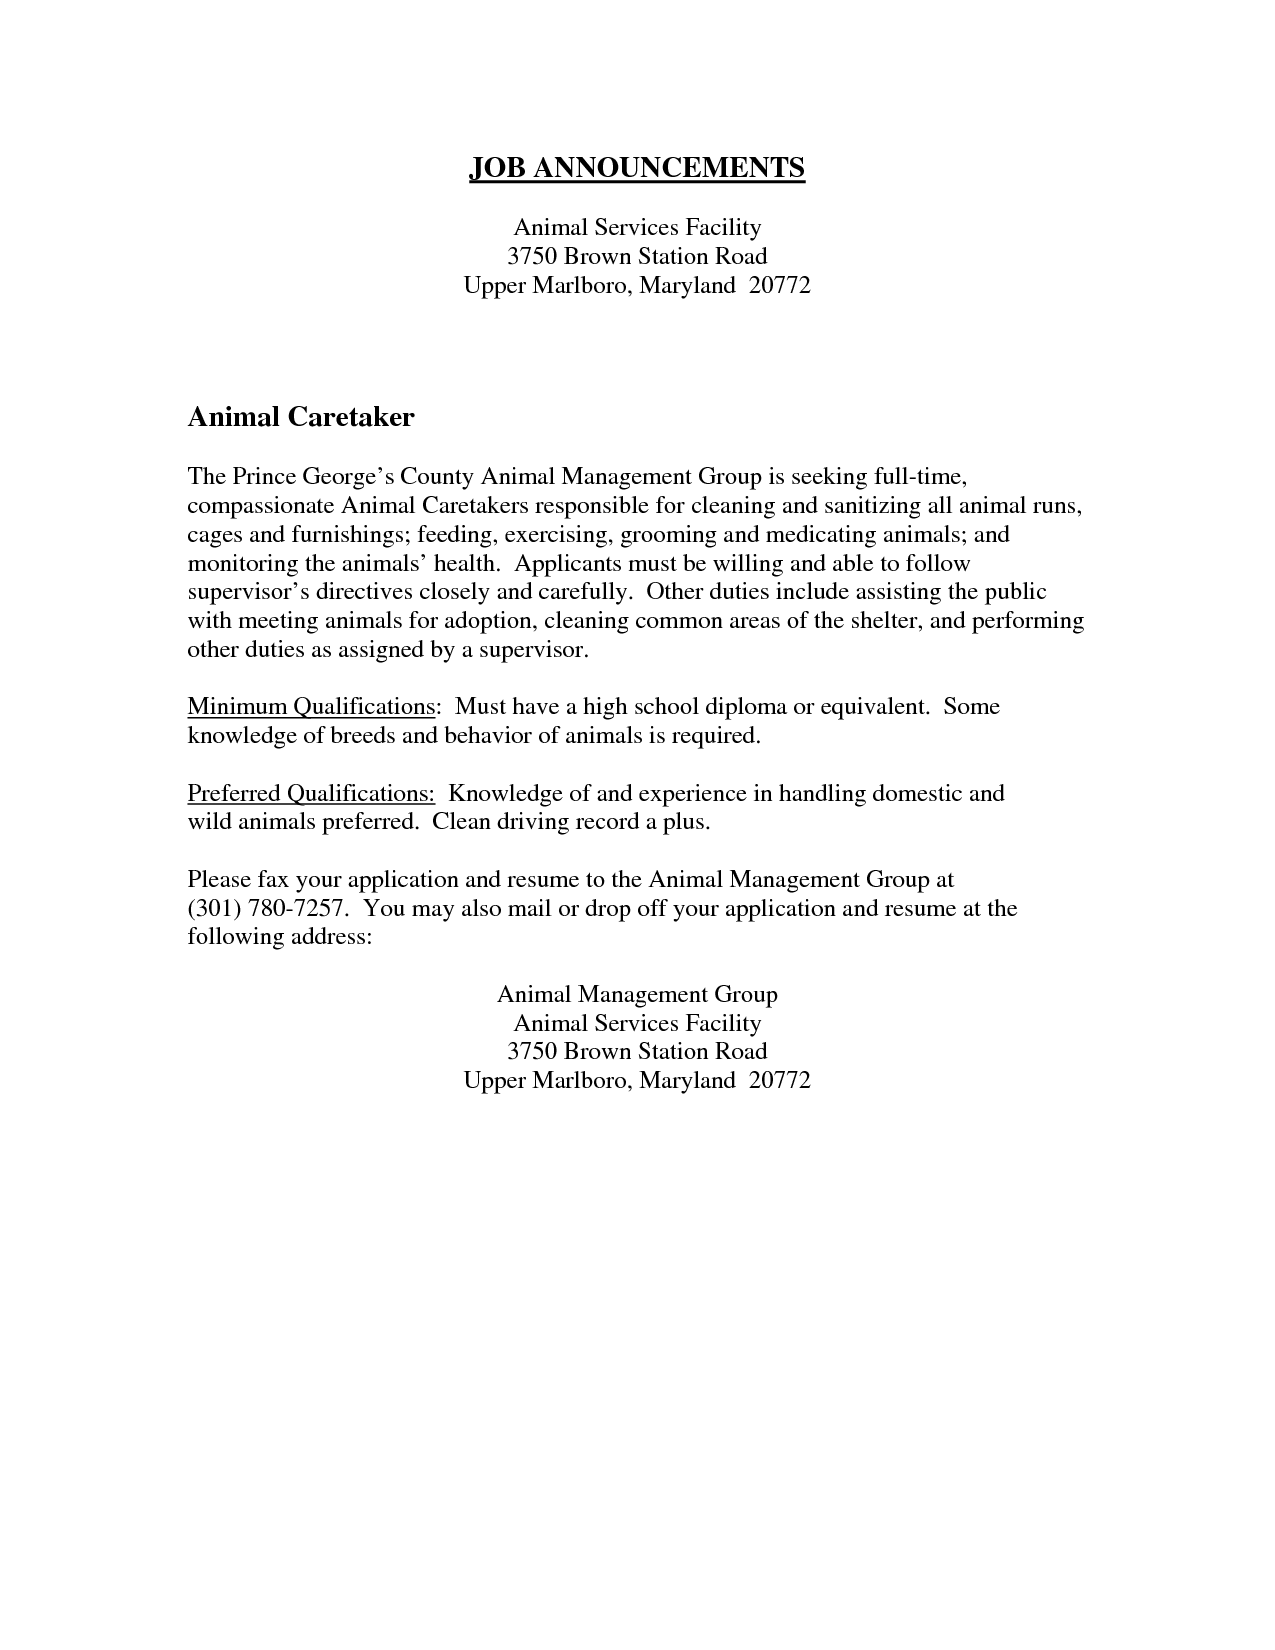 Sample letters to write a cover letter to introduce a resume ...